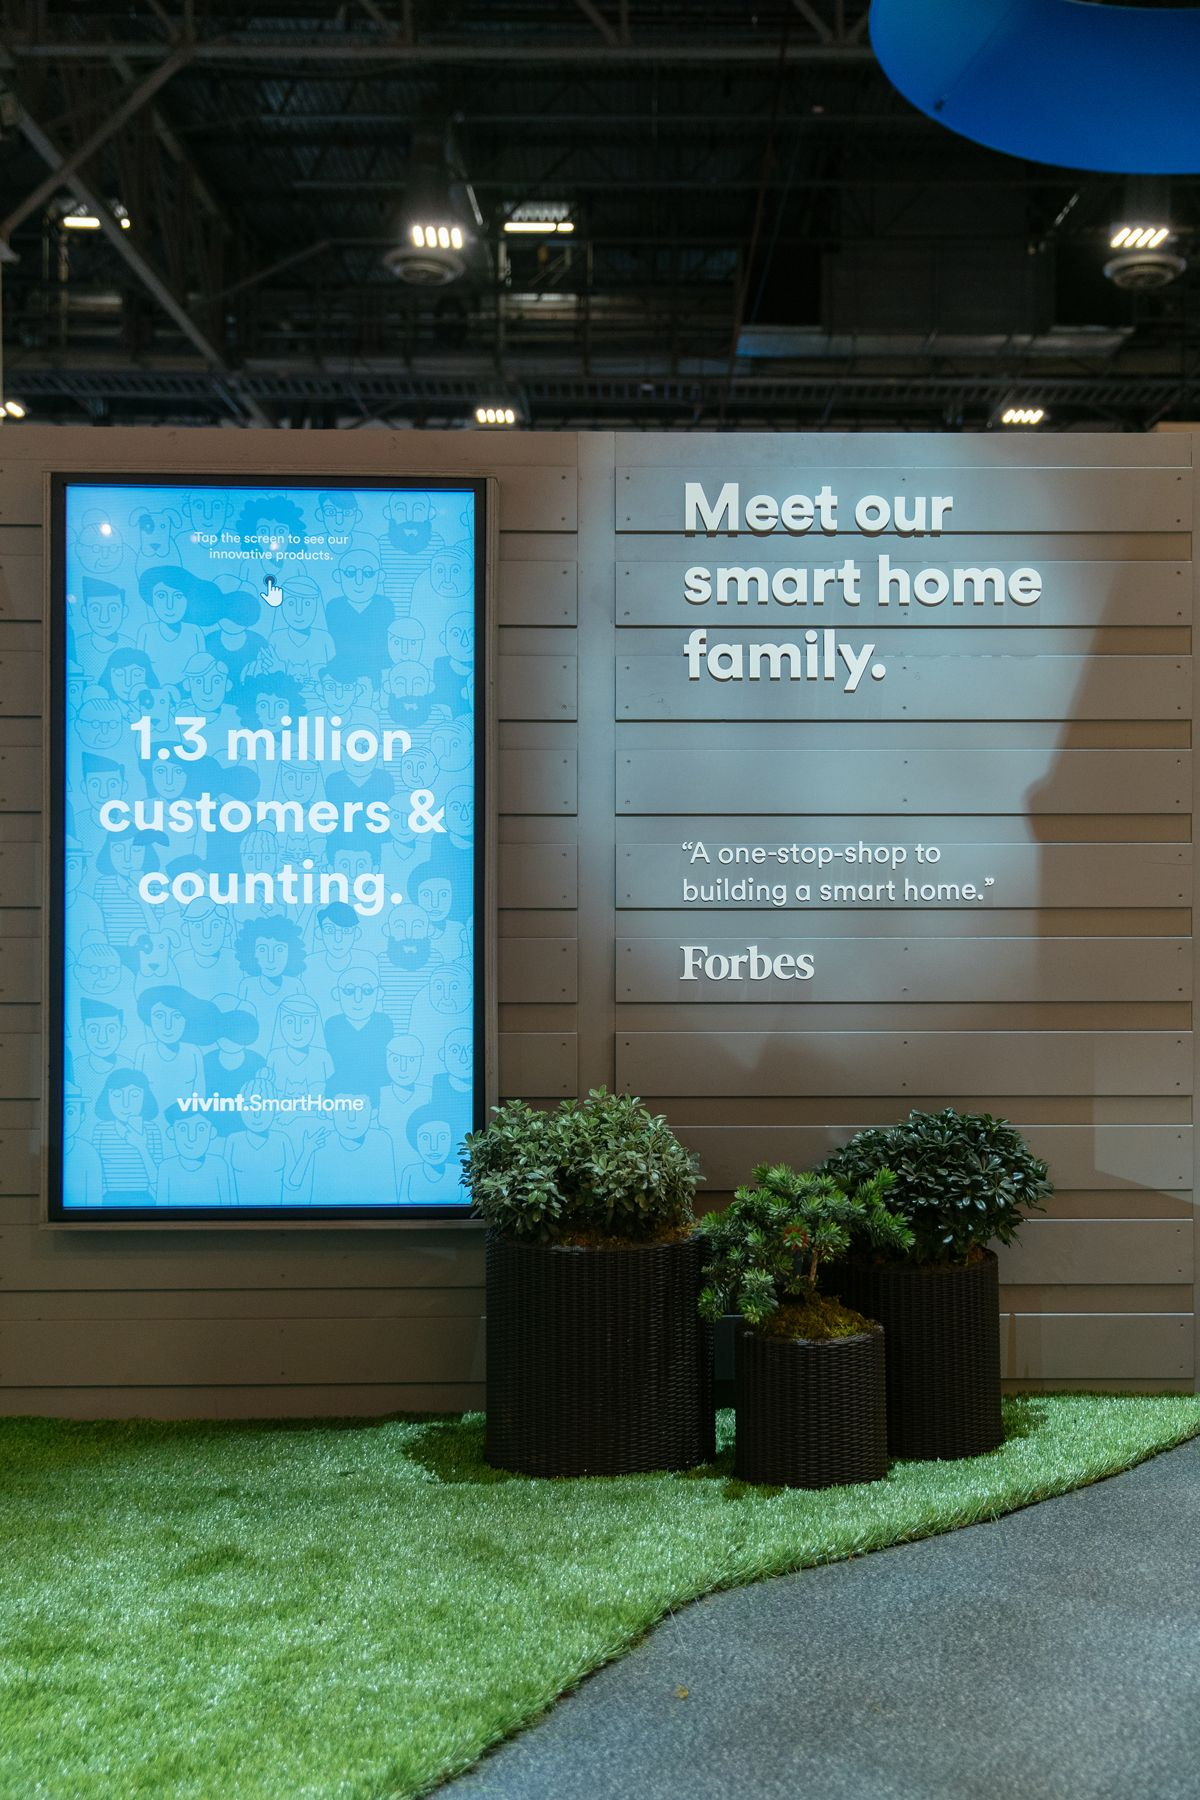 Explore the Vivint Smart Home Booth at CES 2018 Smart